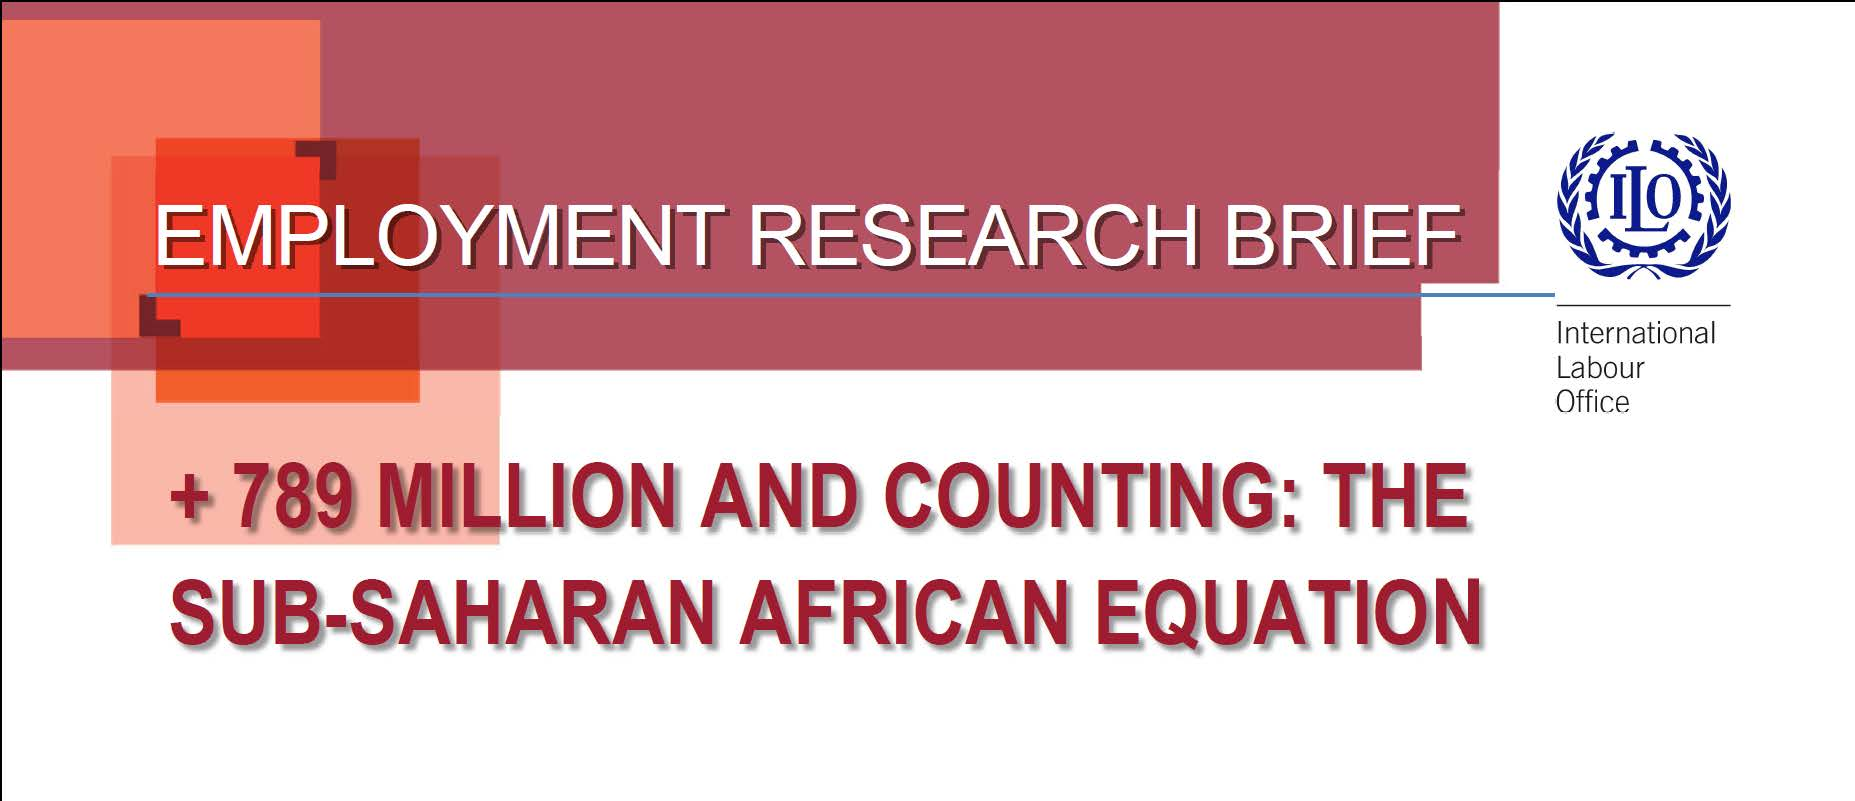 ILO Employment Research Brief